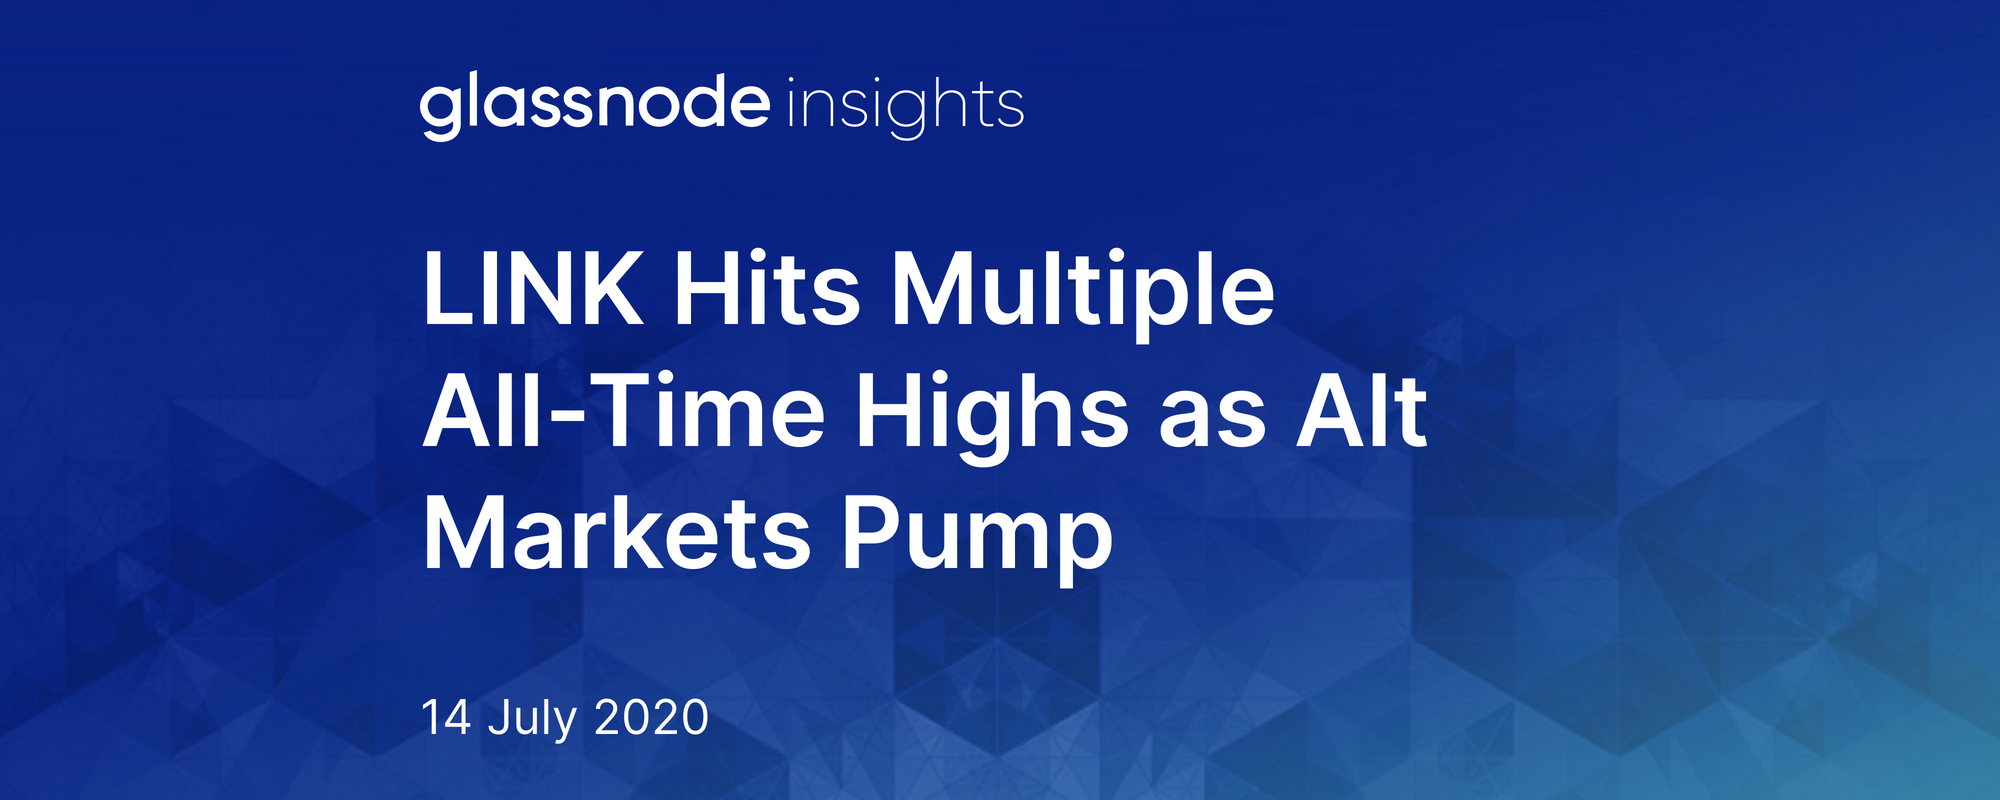 LINK Hits Multiple All-Time Highs as Alt Markets Pump